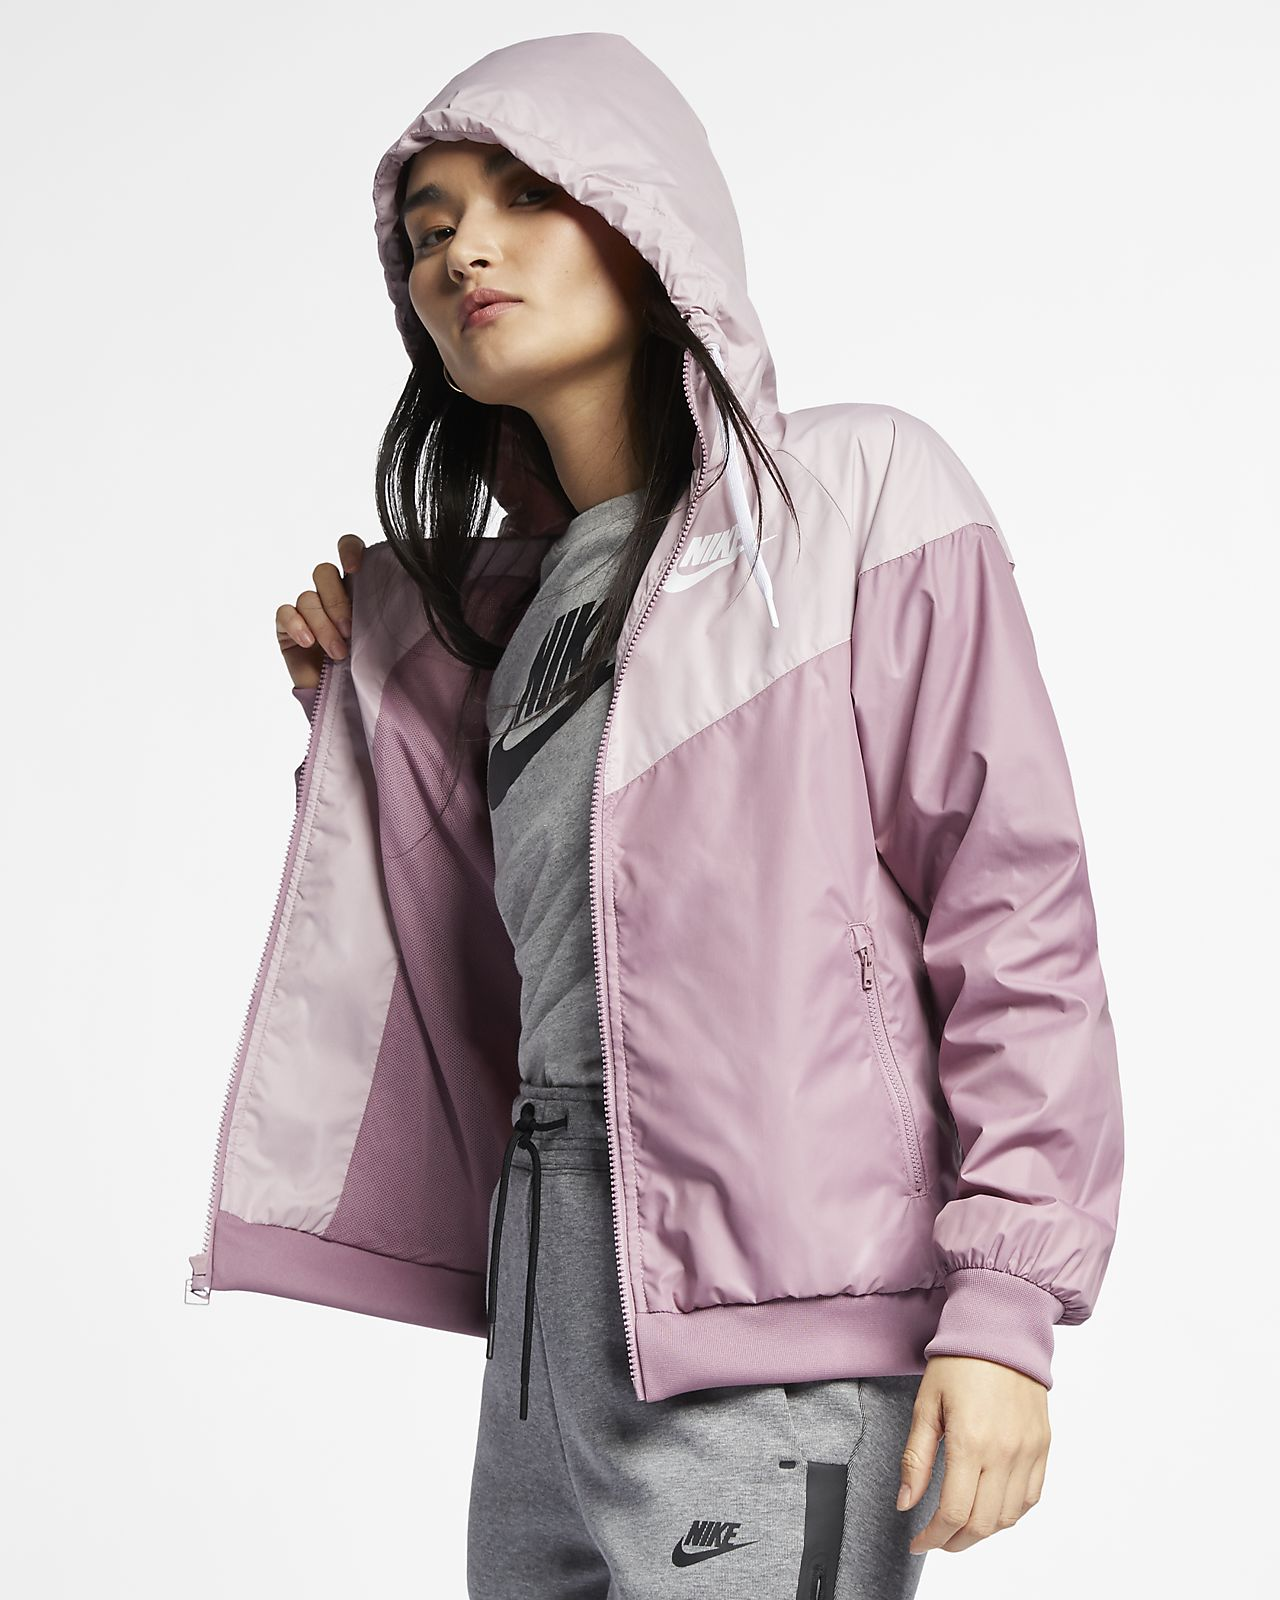 a042082e1d Low Resolution Nike Sportswear Windrunner Women s Windbreaker Nike  Sportswear Windrunner Women s Windbreaker